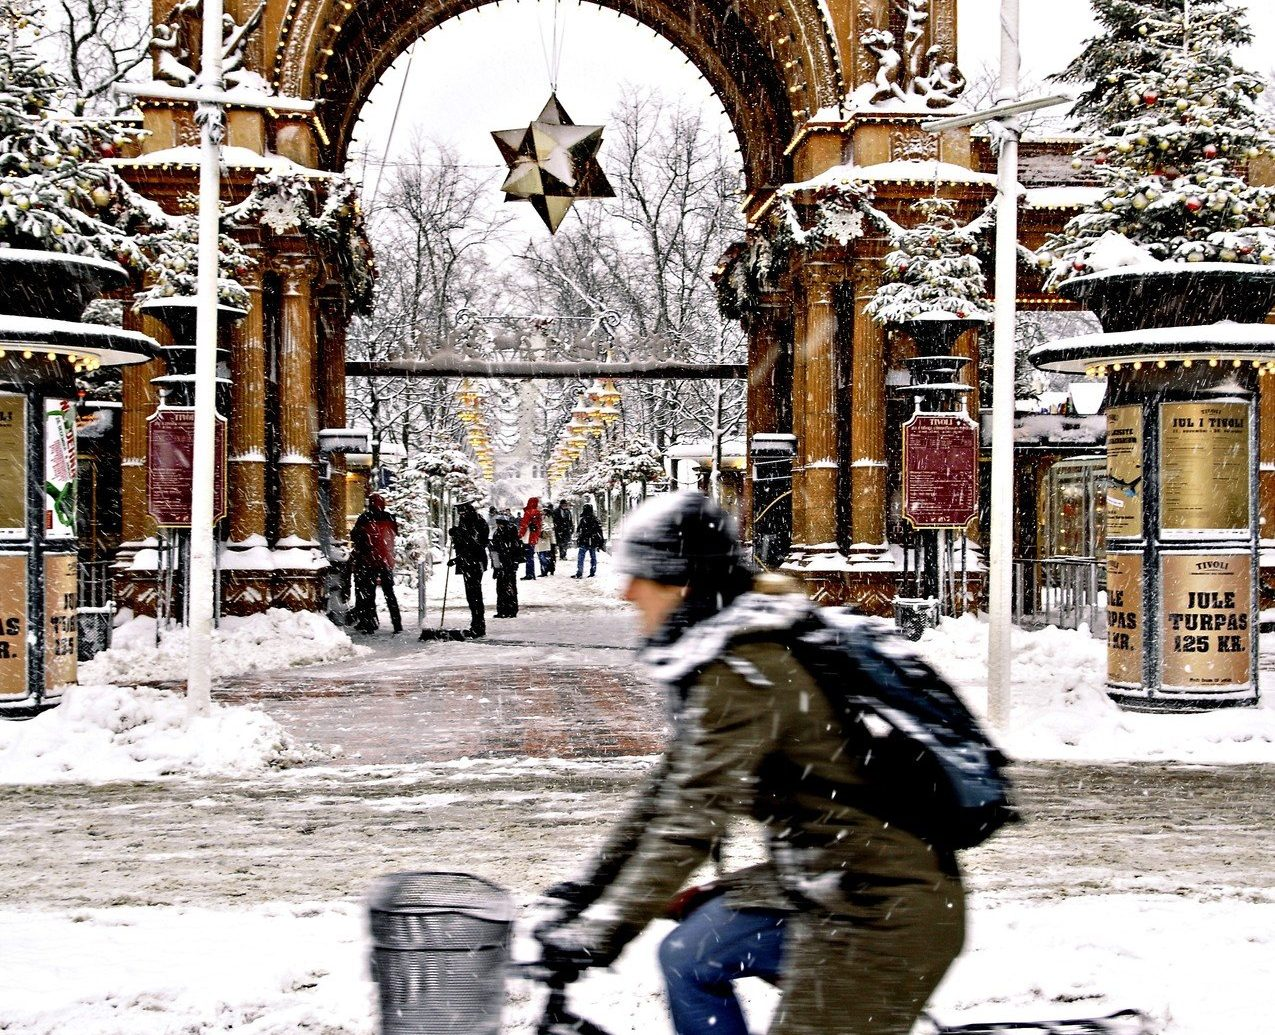 Trip Ideas outdoor building bicycle person man riding snow Winter weather season vehicle sports equipment